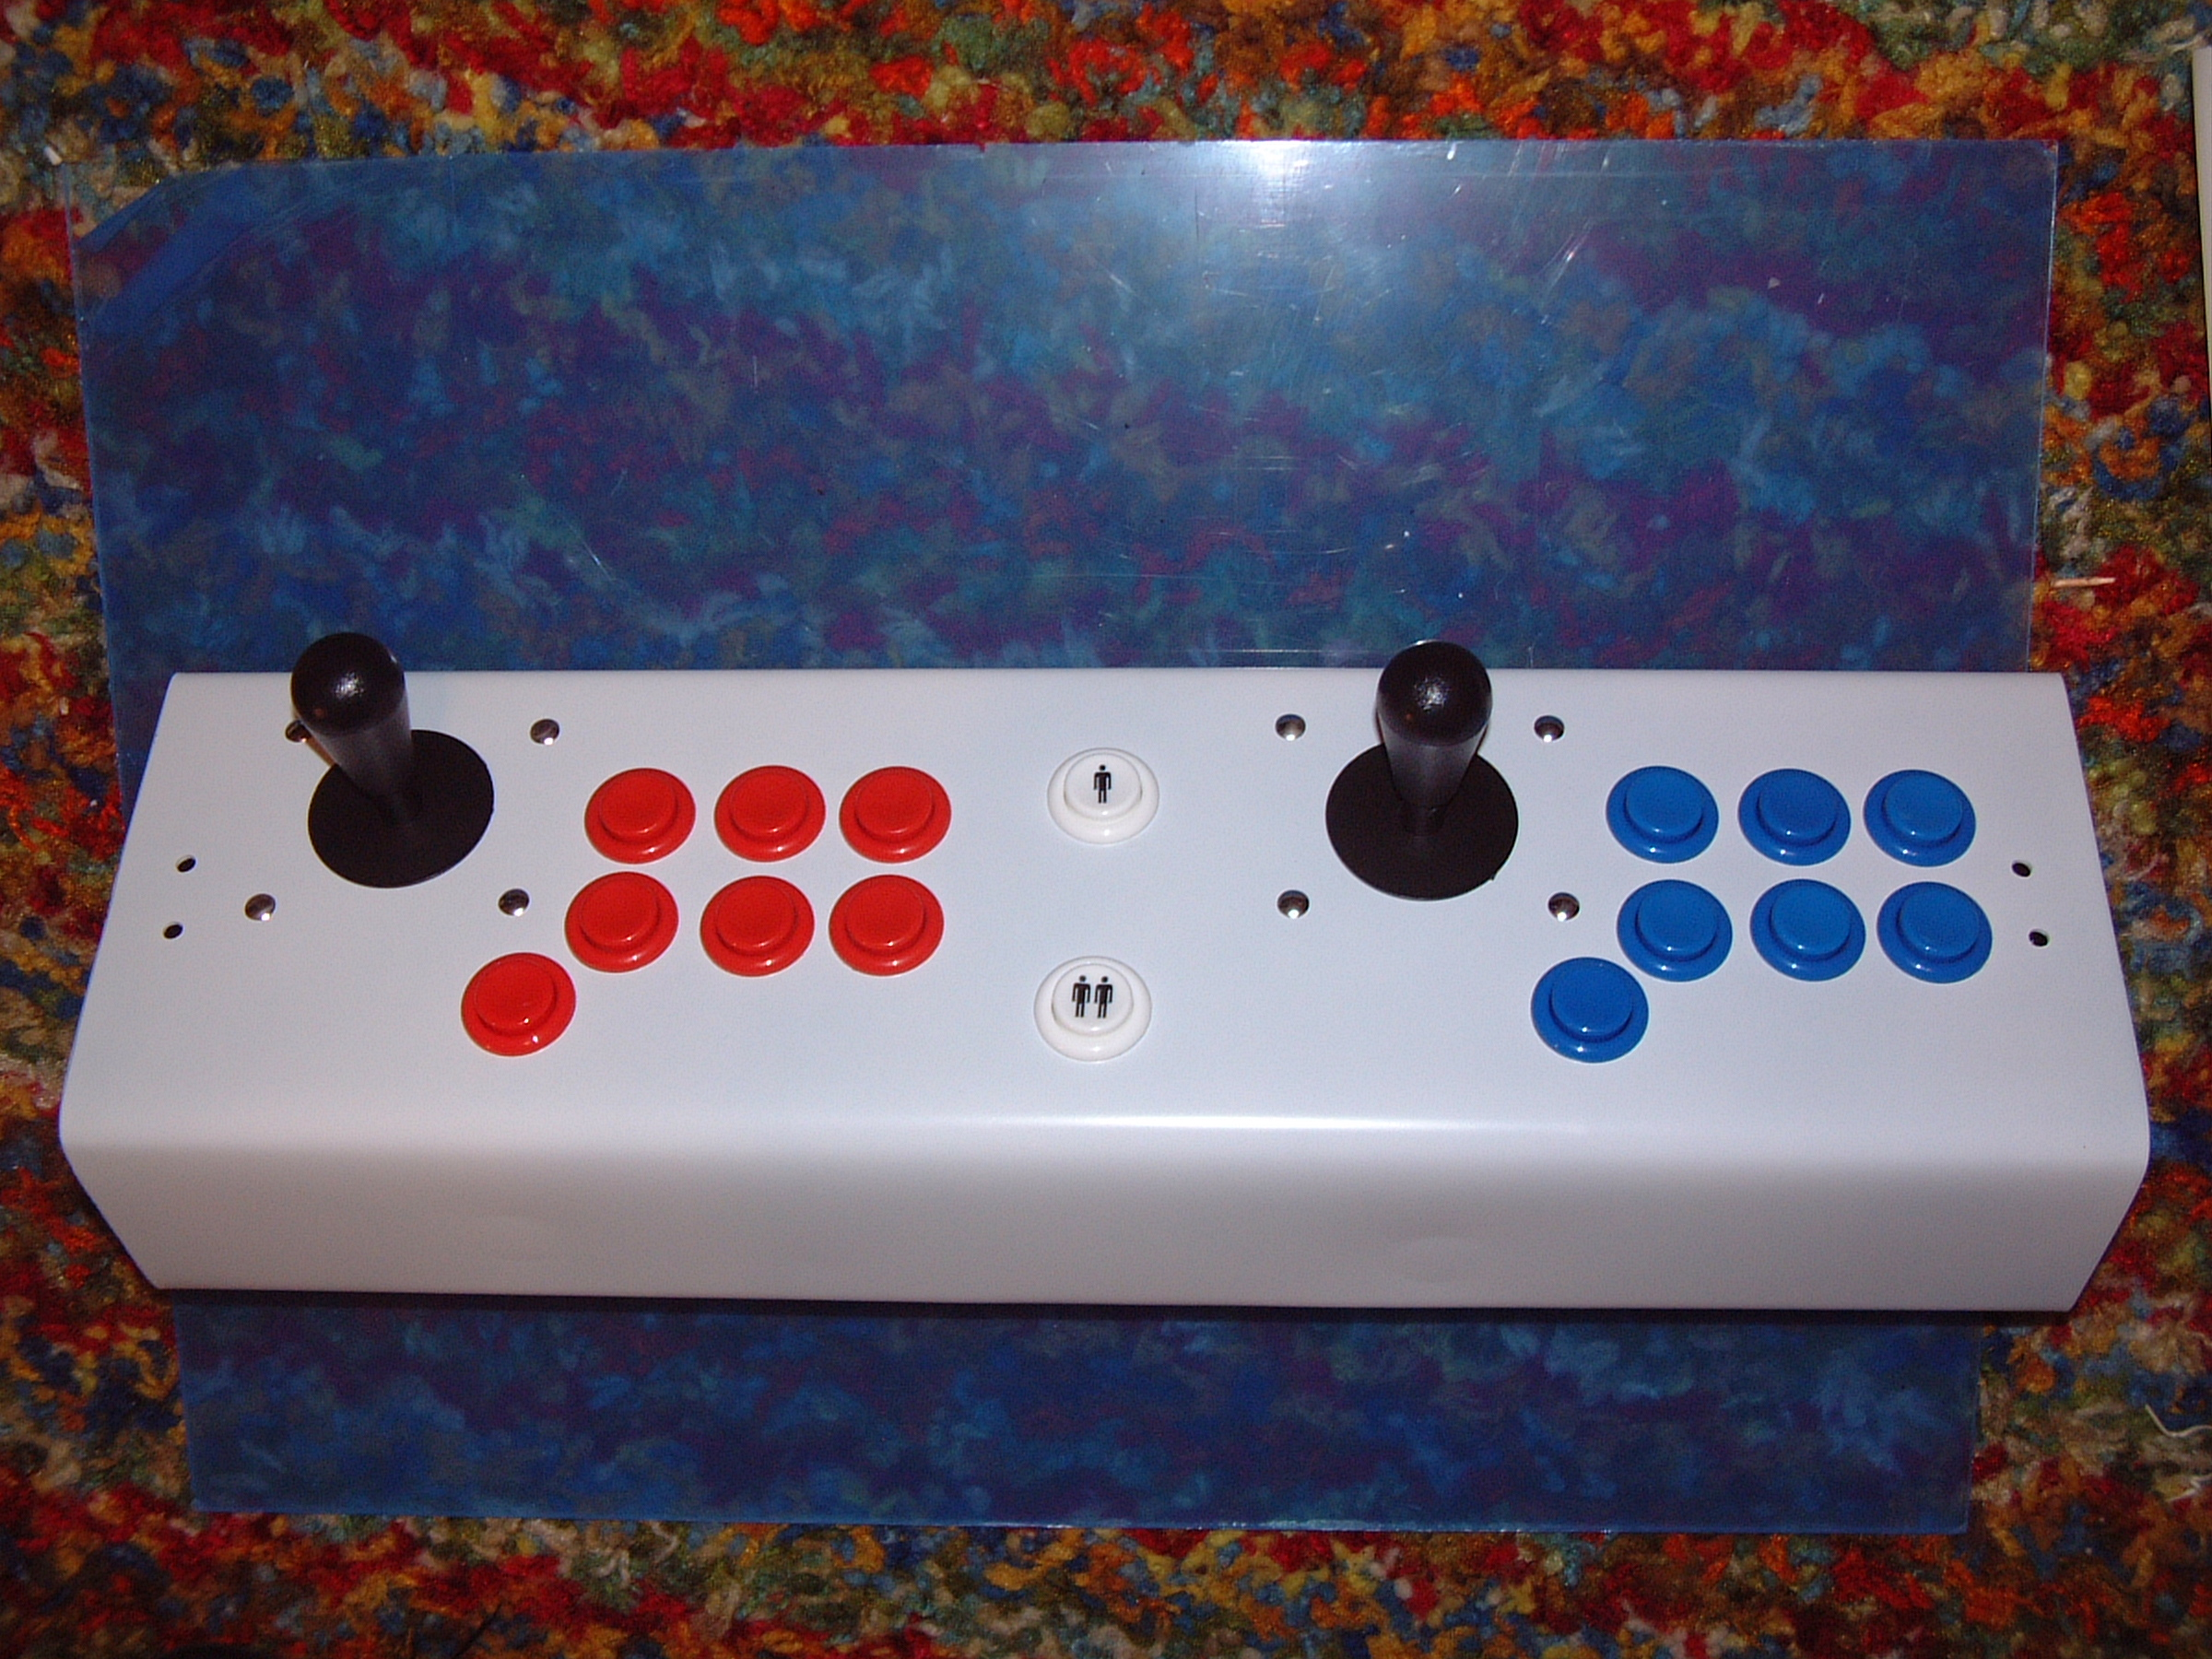 Arcade cabinet metal paneled joysticks